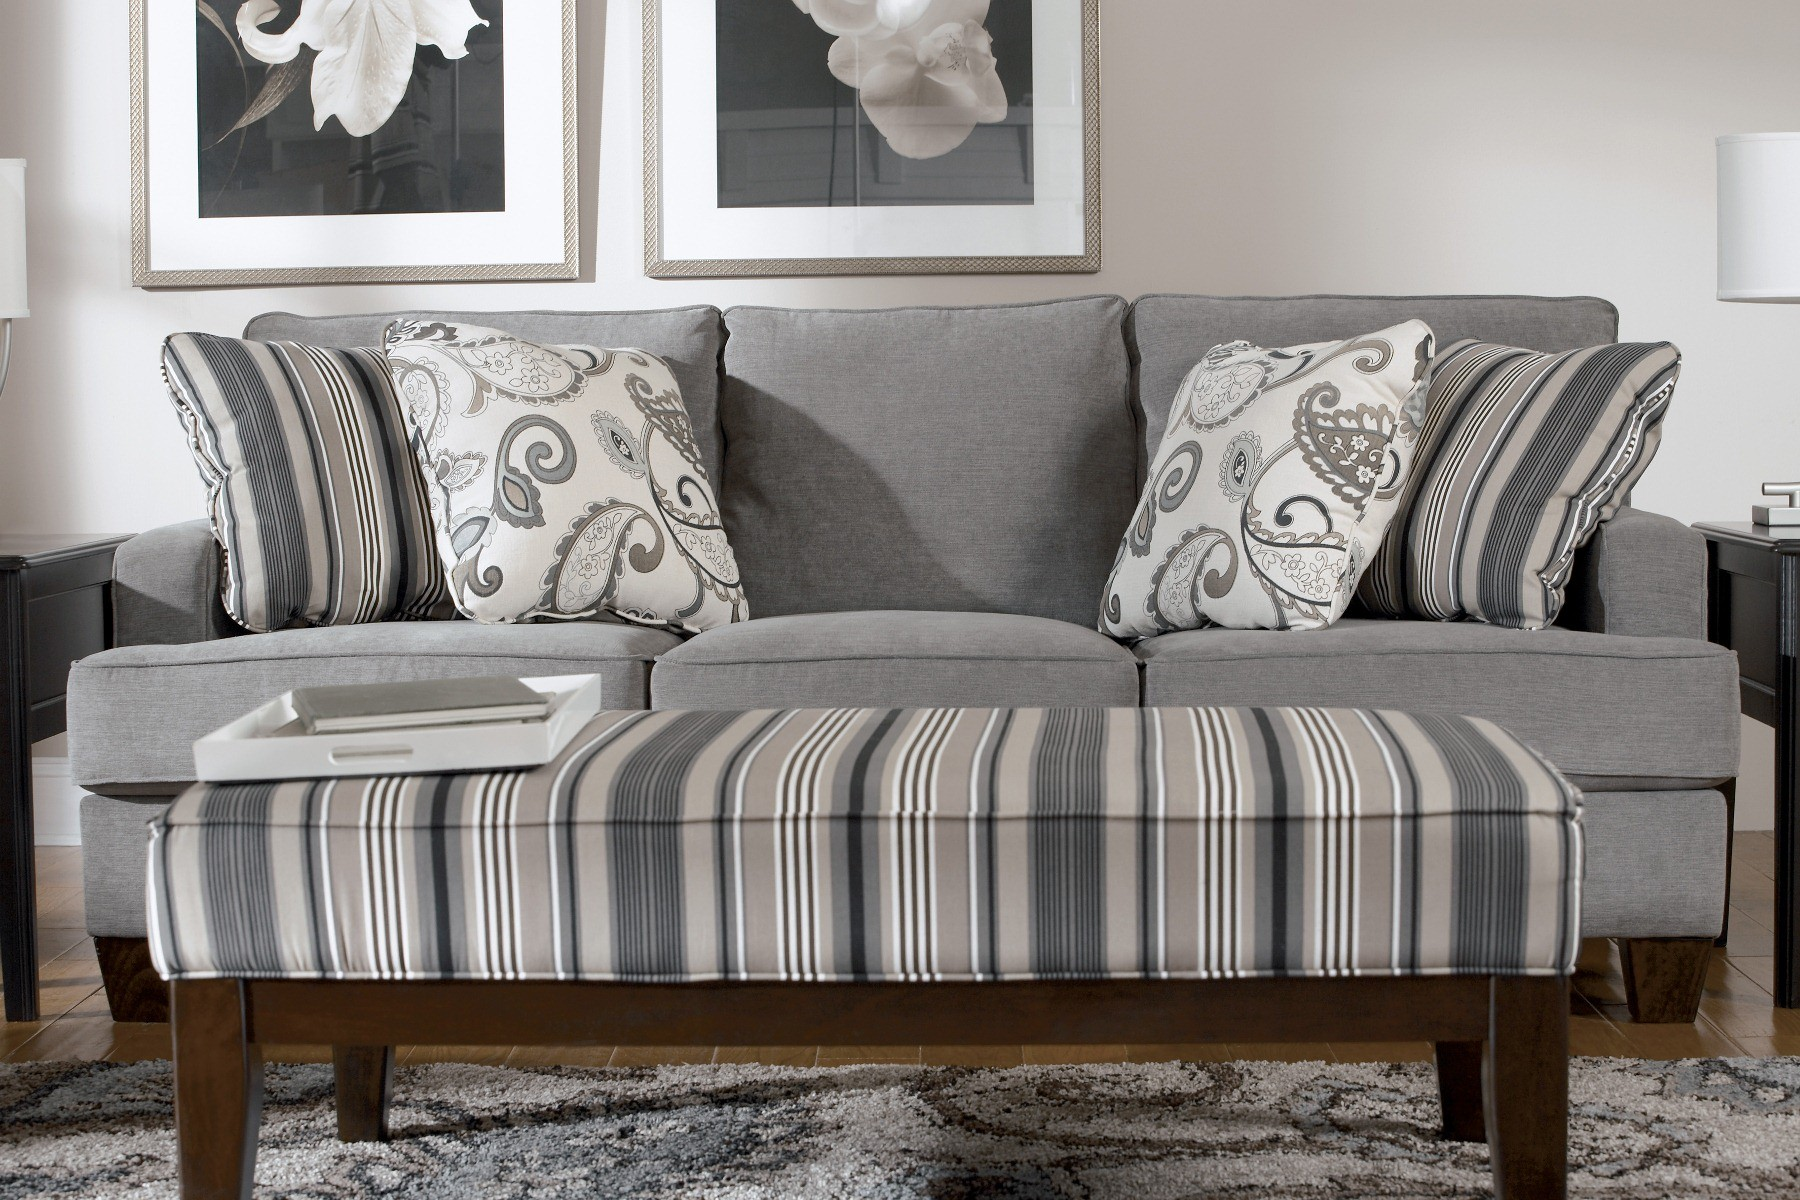 Sofa Set In Metal Yvette Steel Living Room Set From Ashley 77900 Coleman